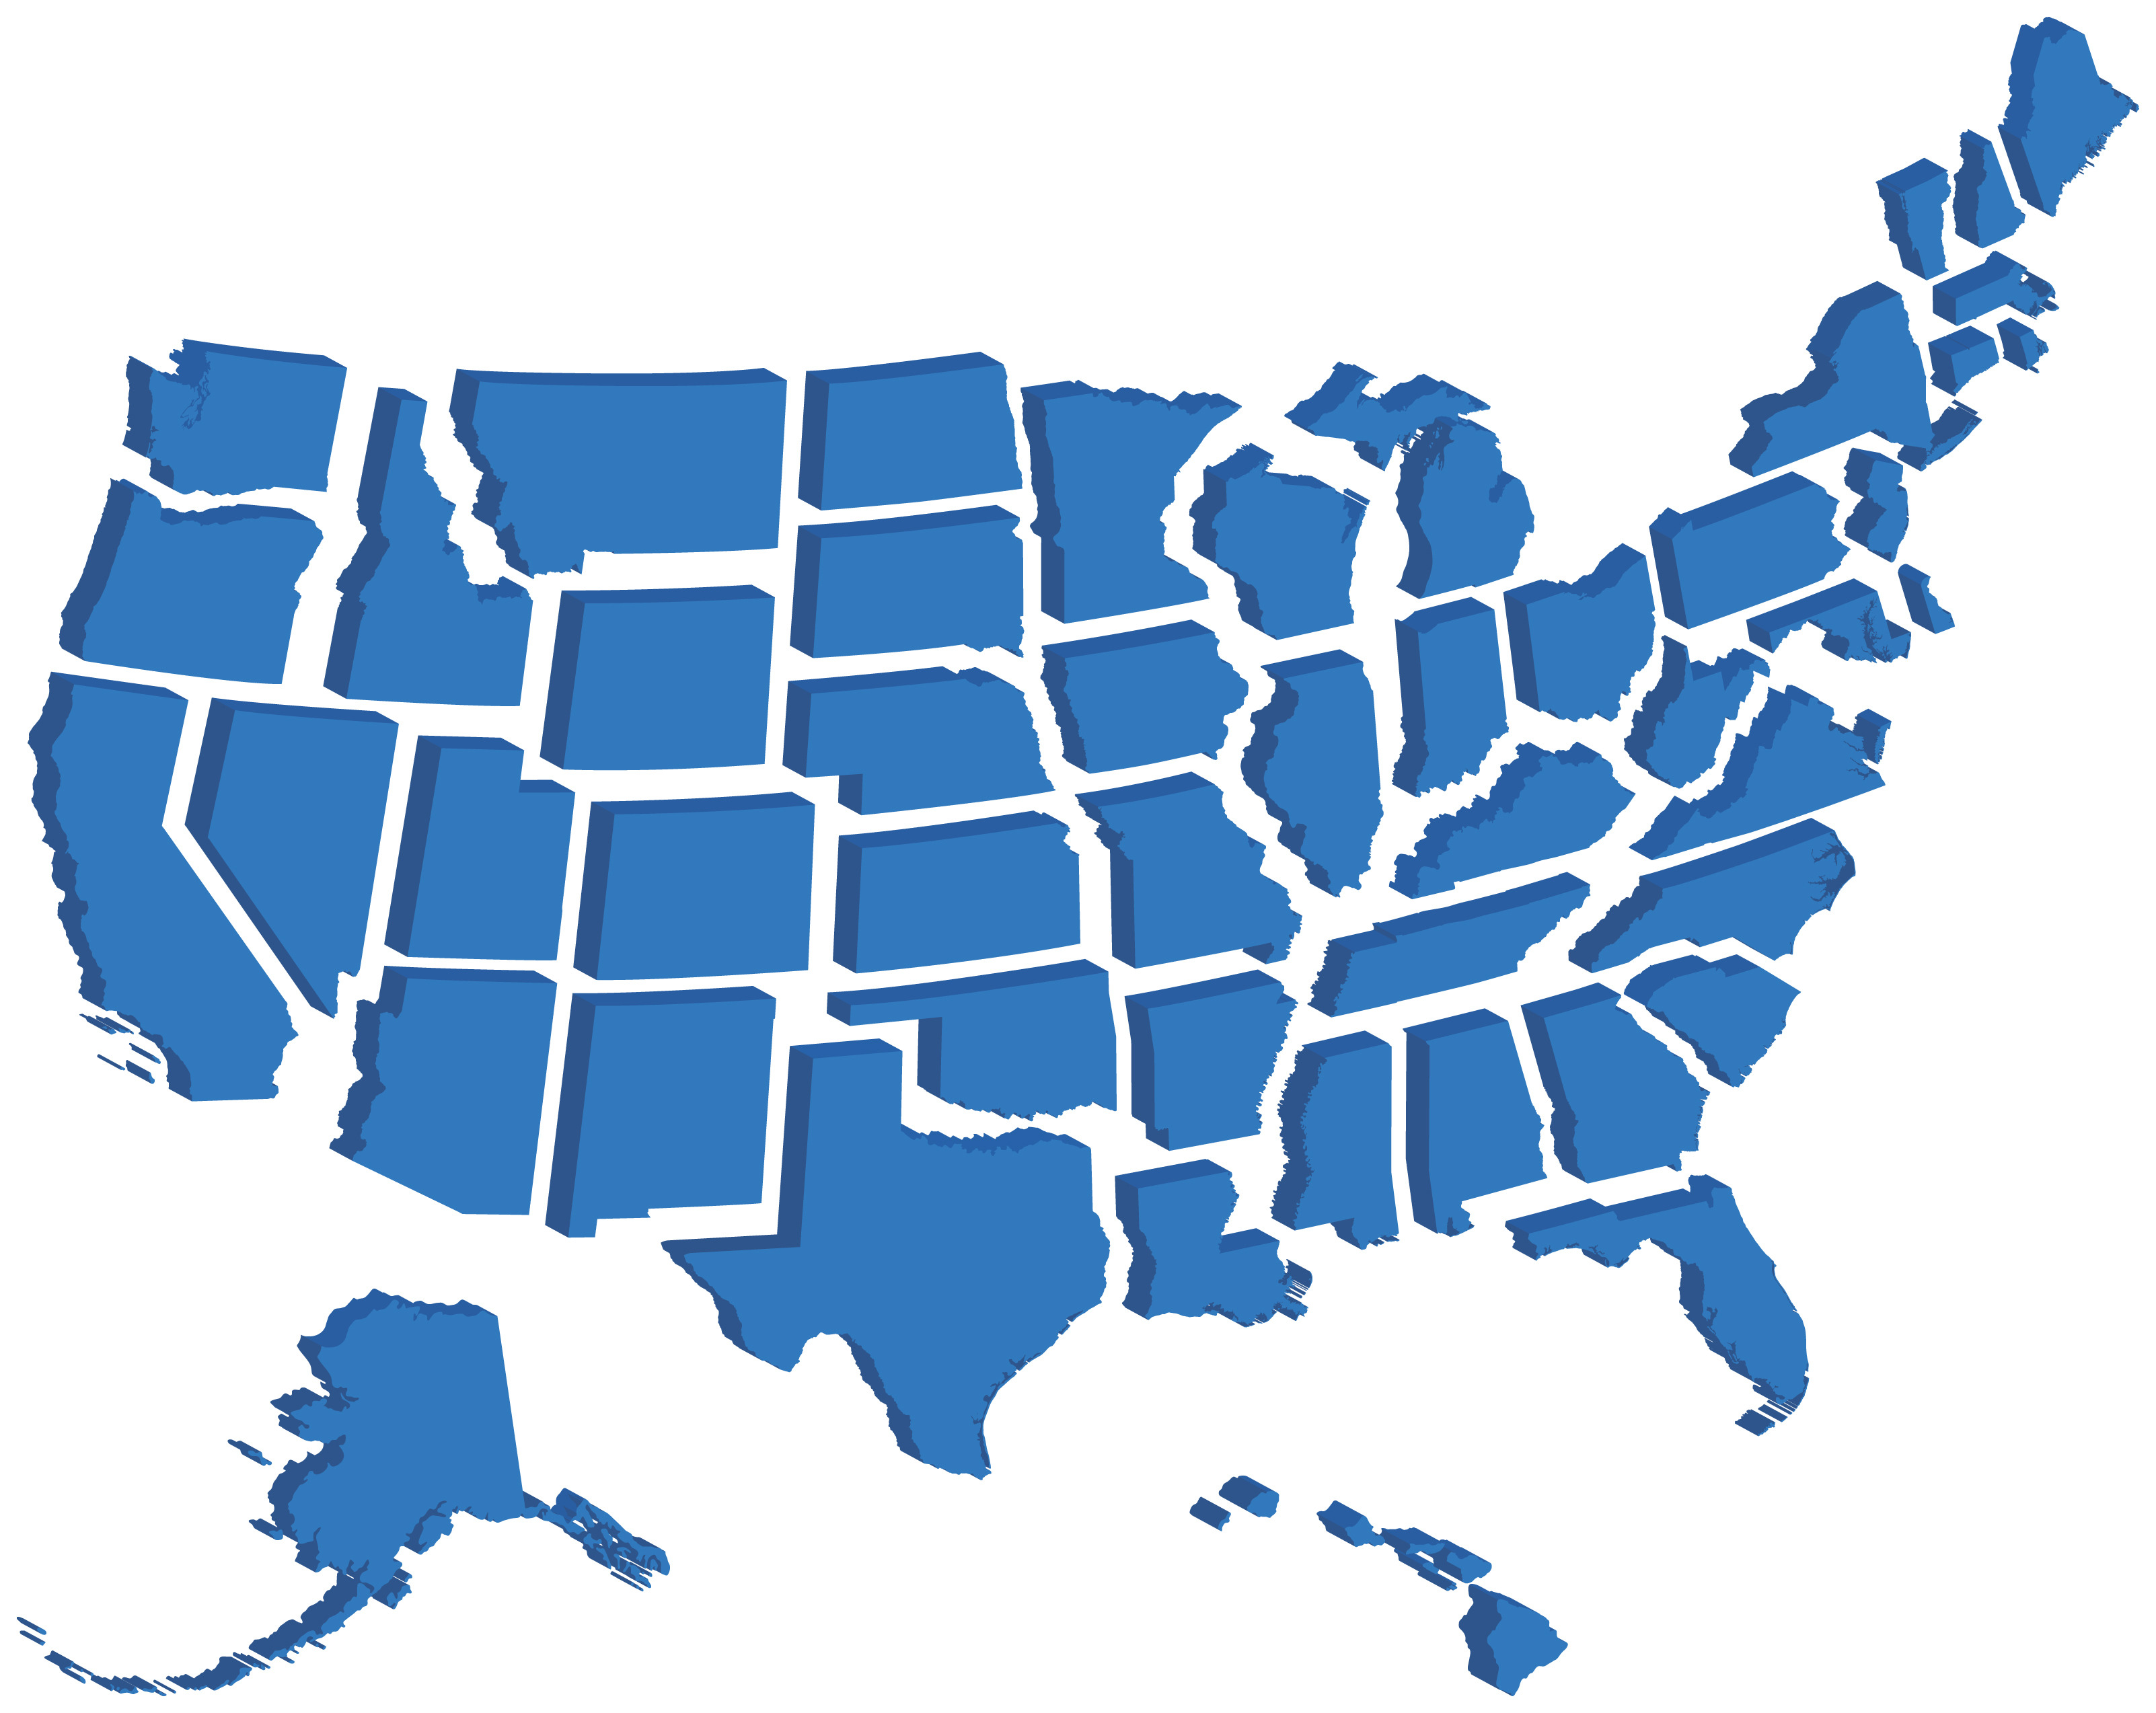 D Map Of United States Stock Photo Image  Usa D Map - 3d map usa states